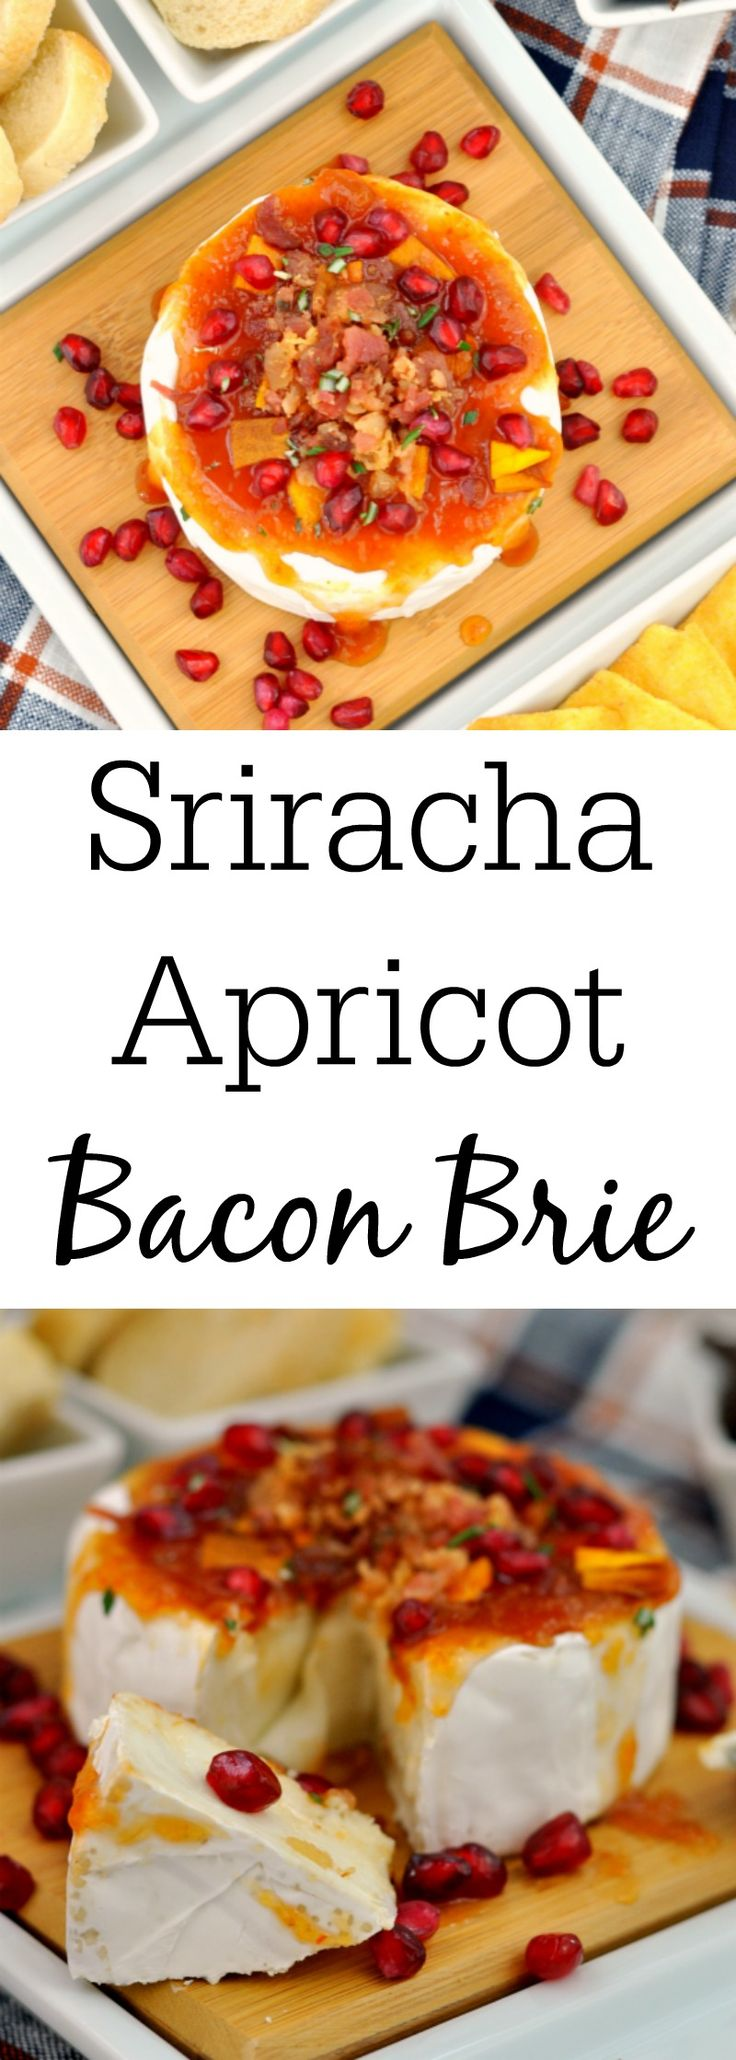 Sriracha Apricot Bacon Brie - A Perfect Holiday Appetizer #AD https://www.mysuburbankitchen.com/2017/11/sriracha-apricot-bacon-brie/